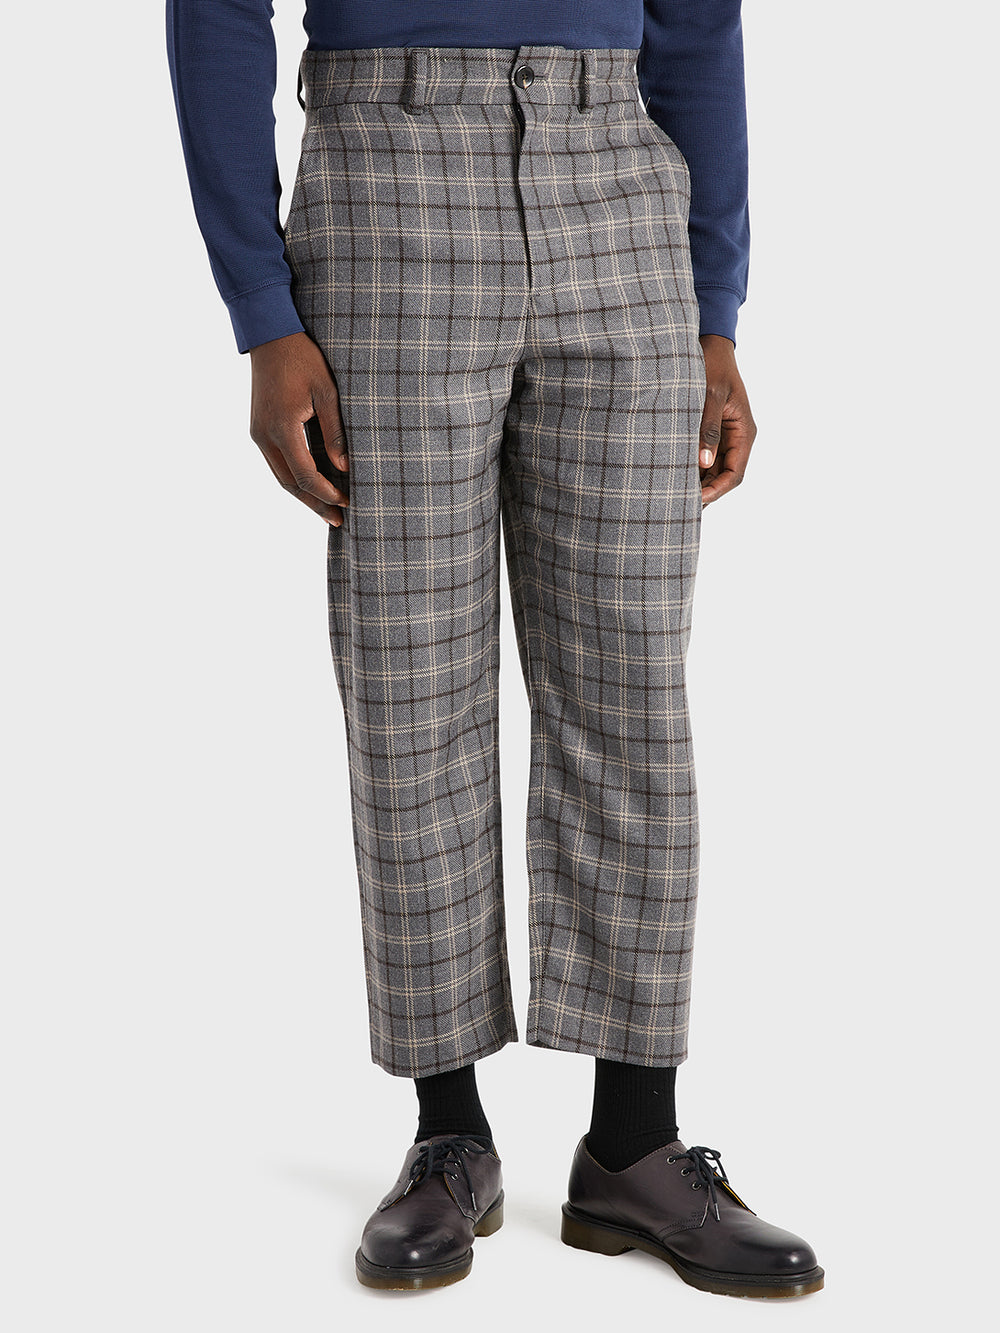 black friday deals ONS Clothing Men's CROSBY WOOL PANTS in LT GREY CHECK